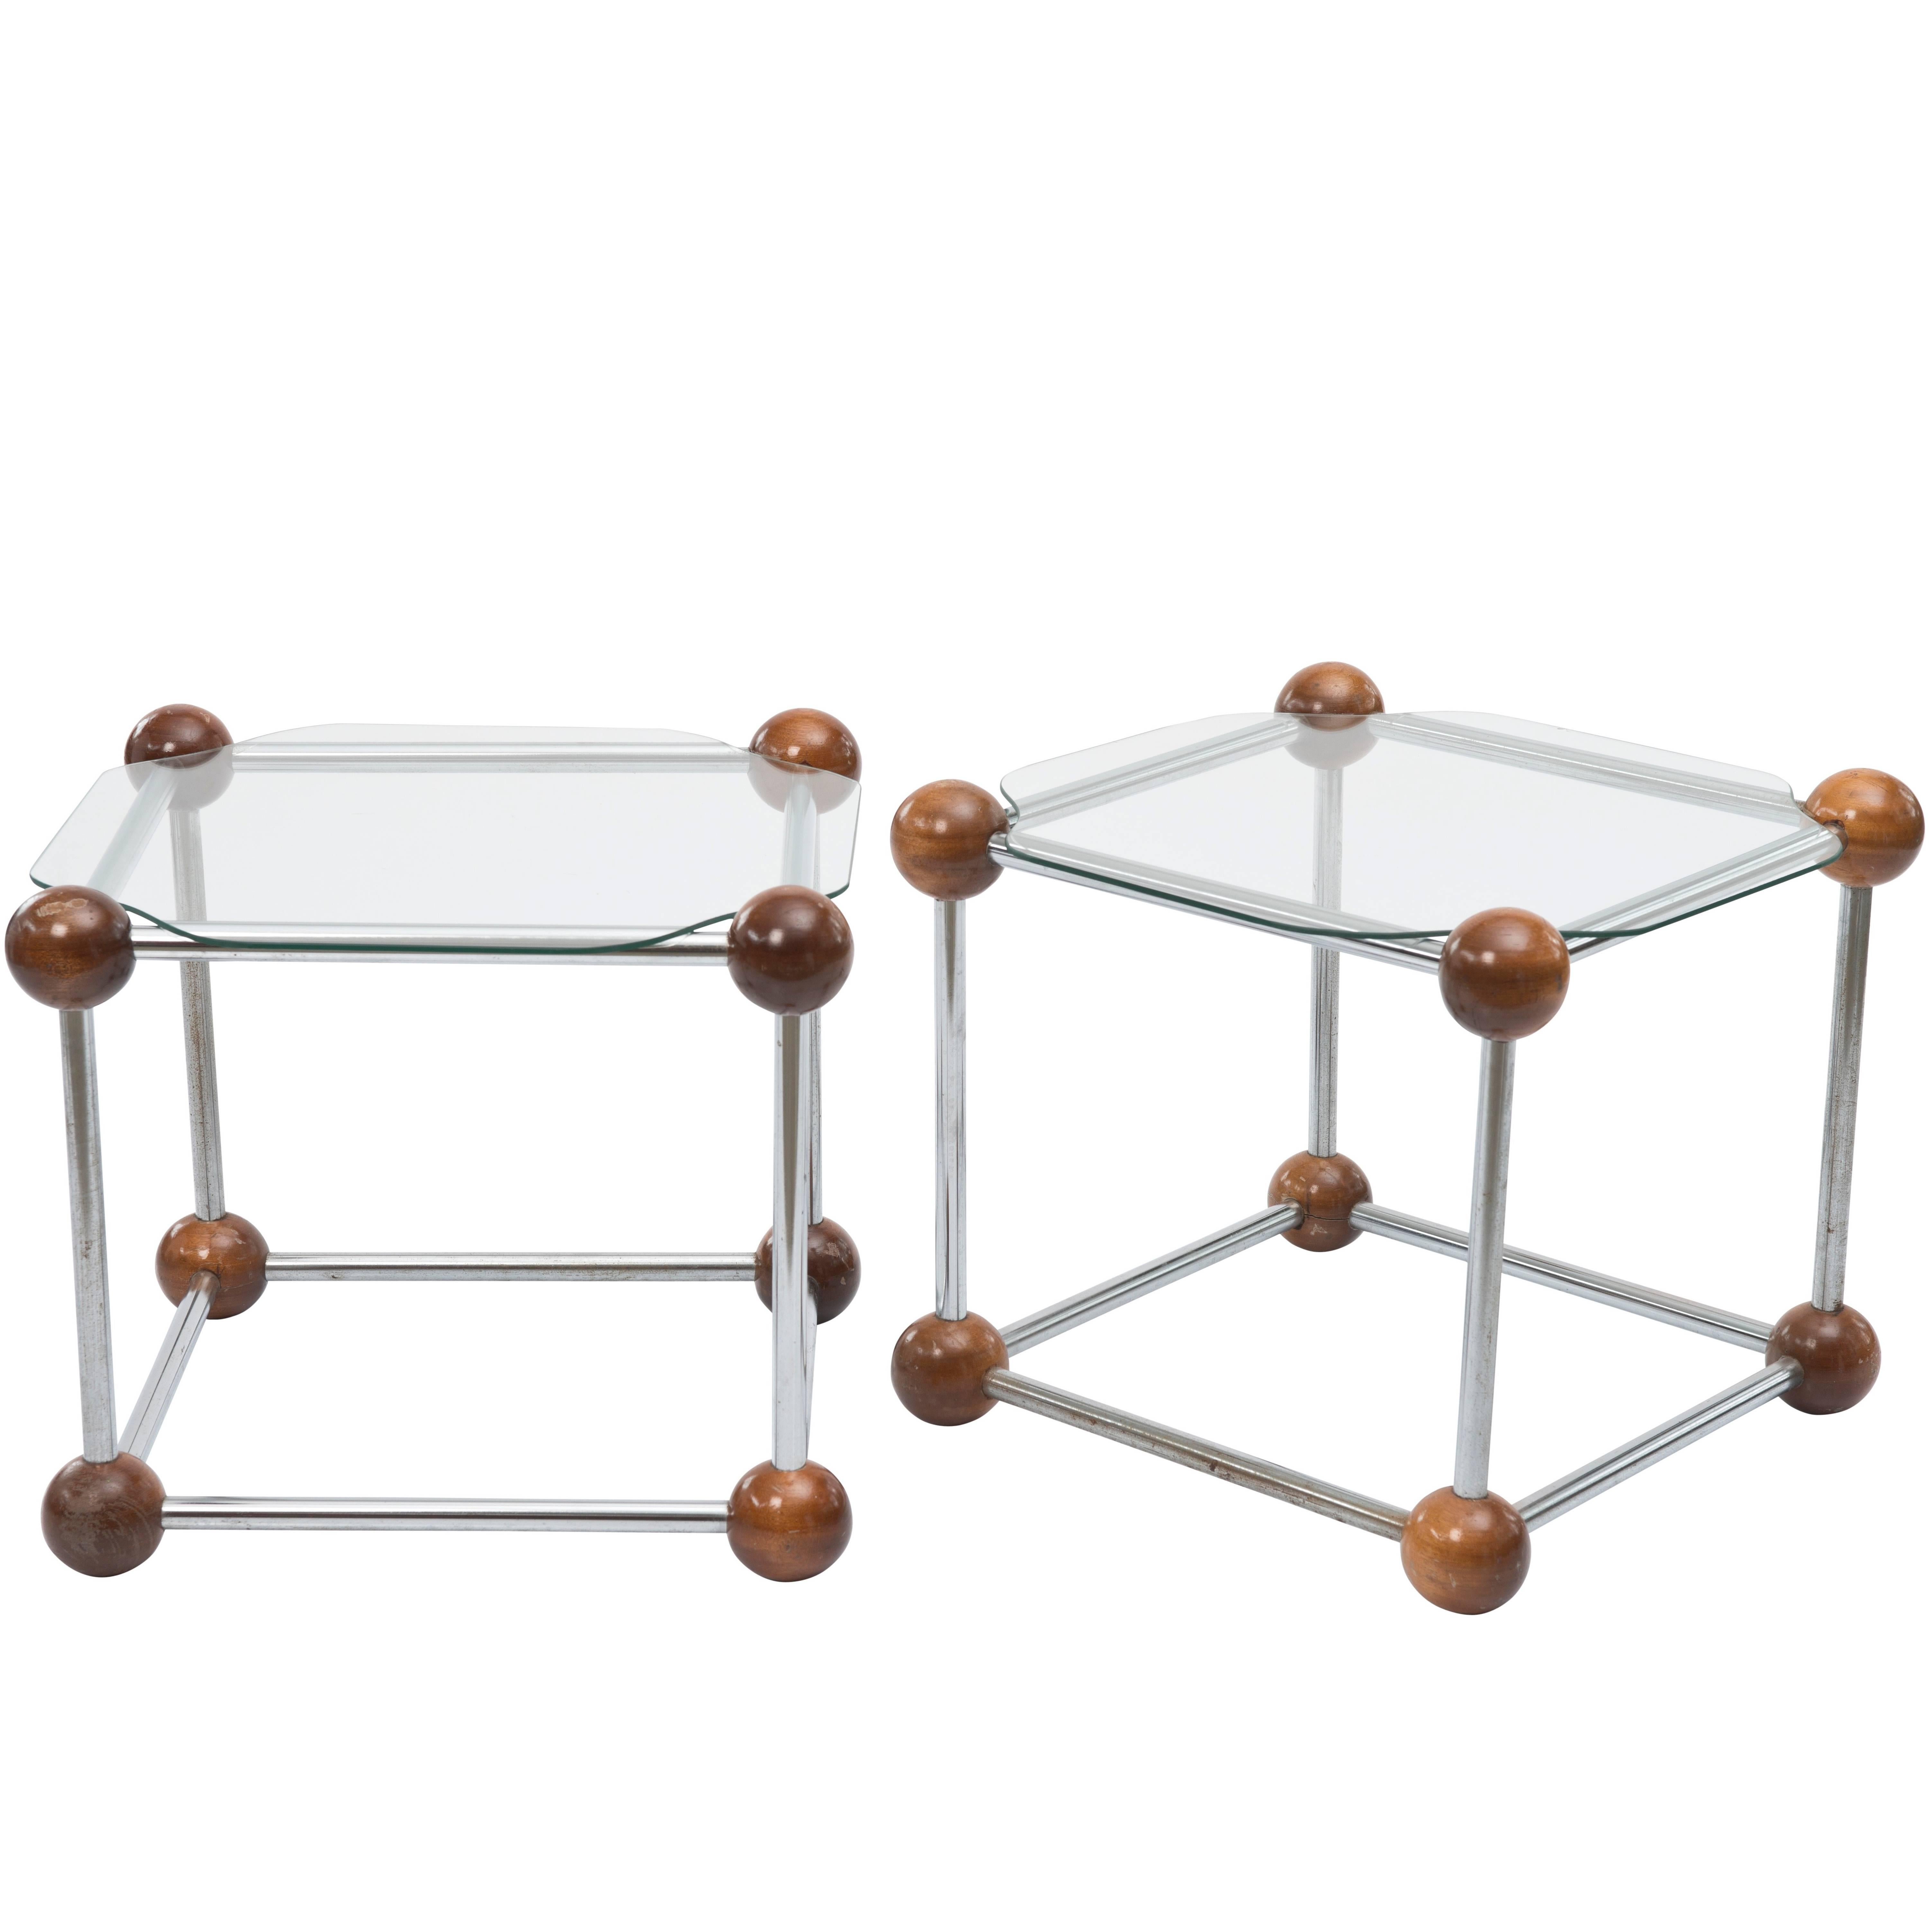 Atomic Age Side Tables For Sale